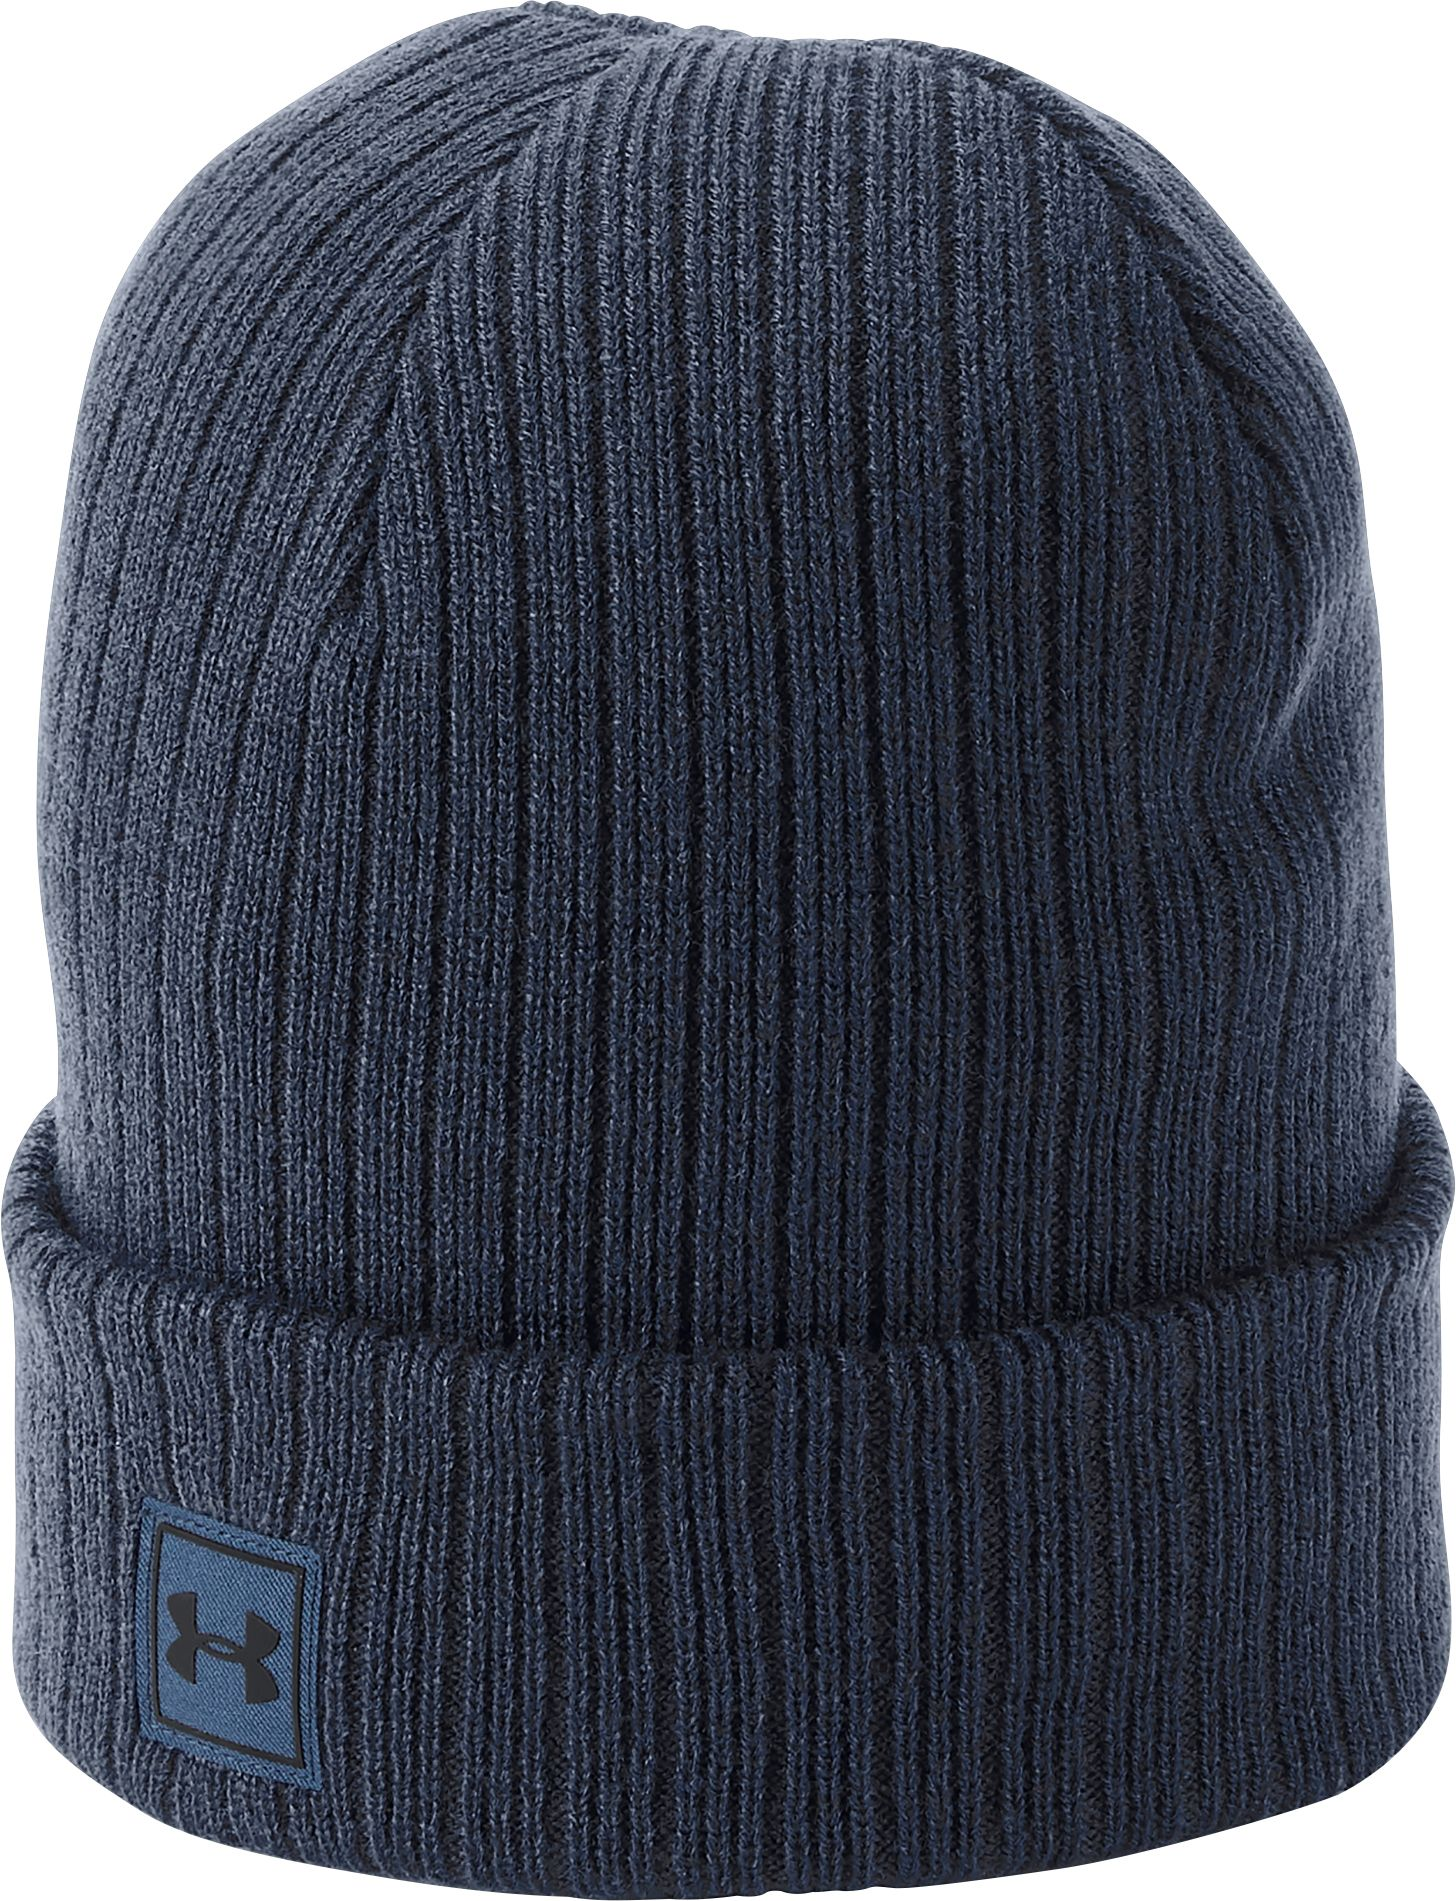 0064b973d056be Under Armour Men's Truckstop 2.0 Beanie | DICK'S Sporting ...